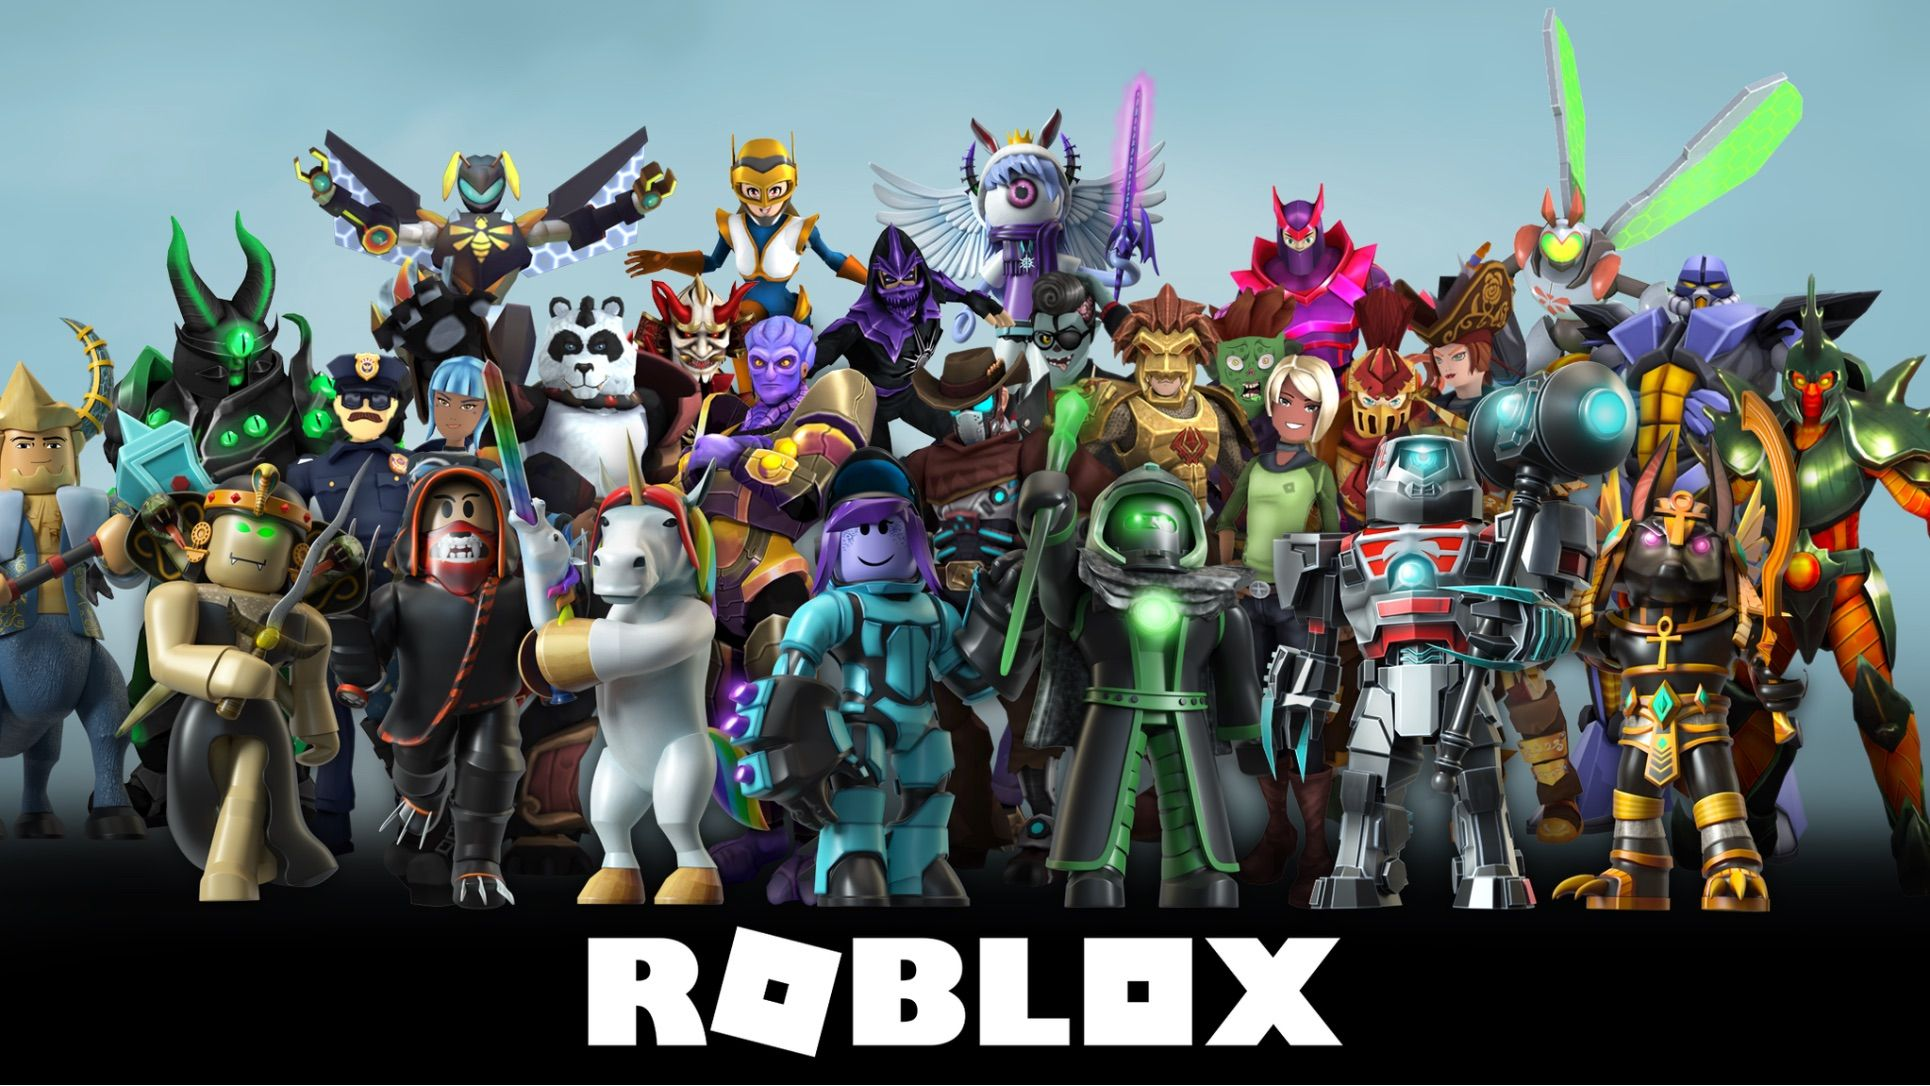 Cara Dapat Robux Di Roblox Gratis Working Robux Generator Gratis Robux Hack Ingen Menneskelig Verifisering Ingen Undersokelse In 2020 Roblox Iphone Games Cheating